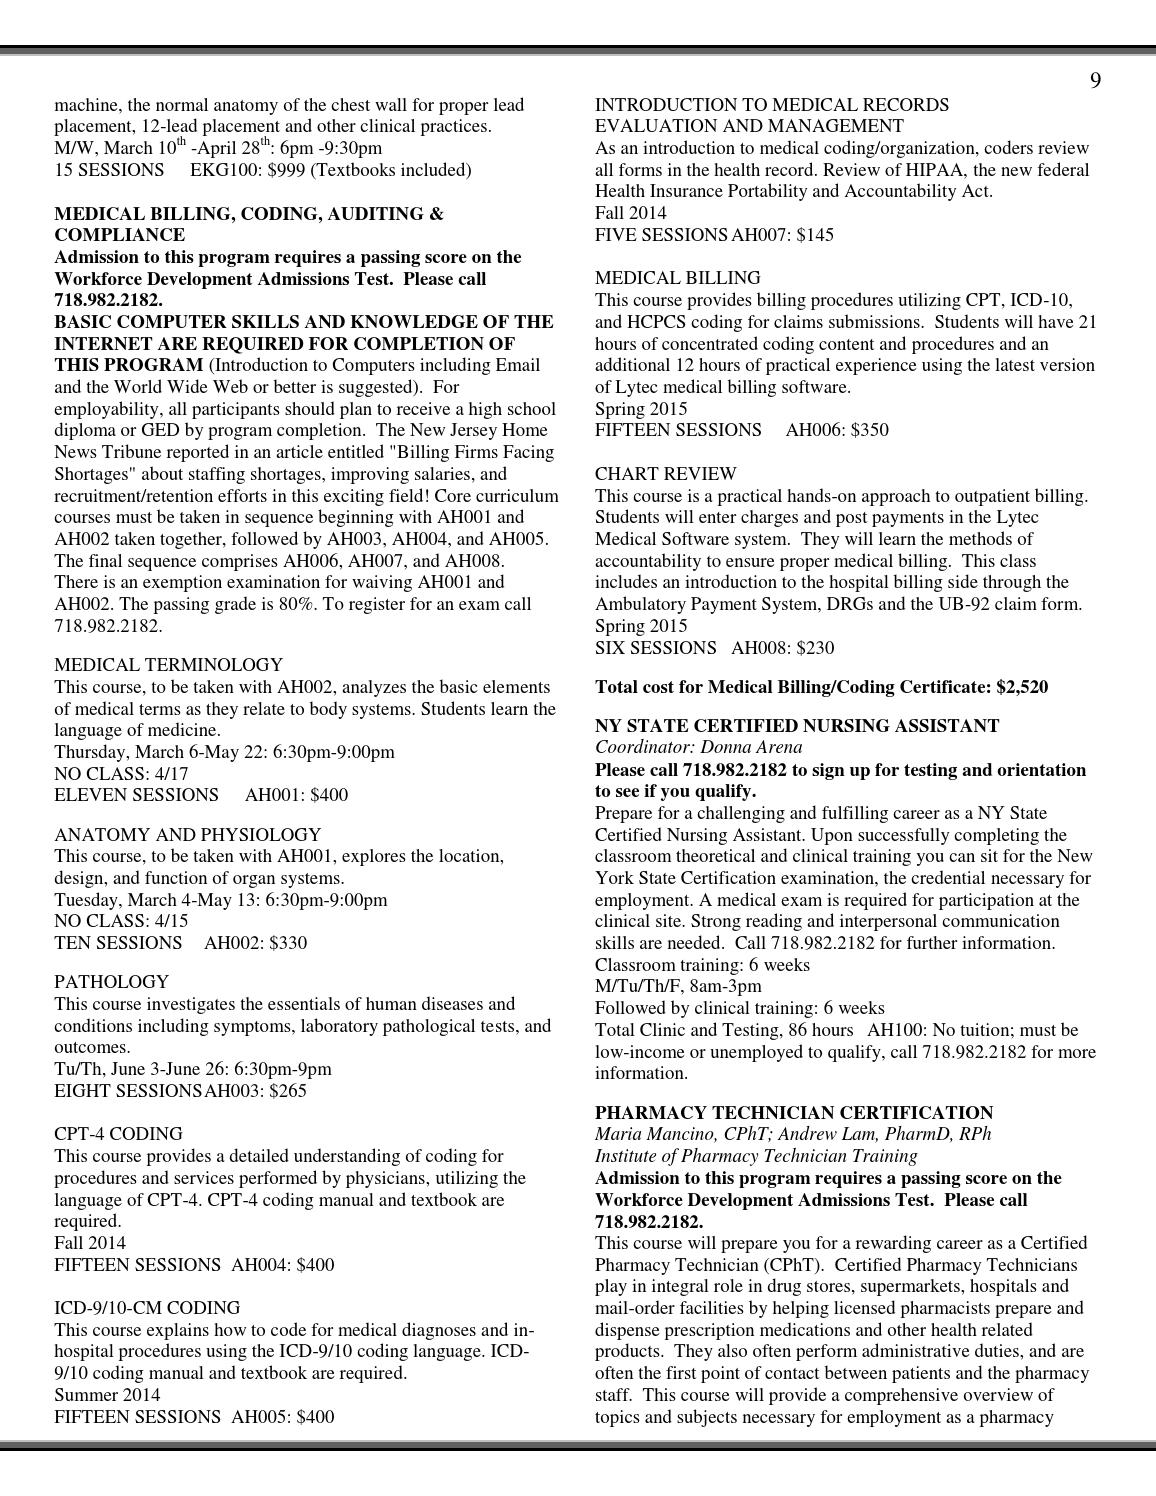 Spring 2014 catalog by CUNY College of Staten Island - issuu